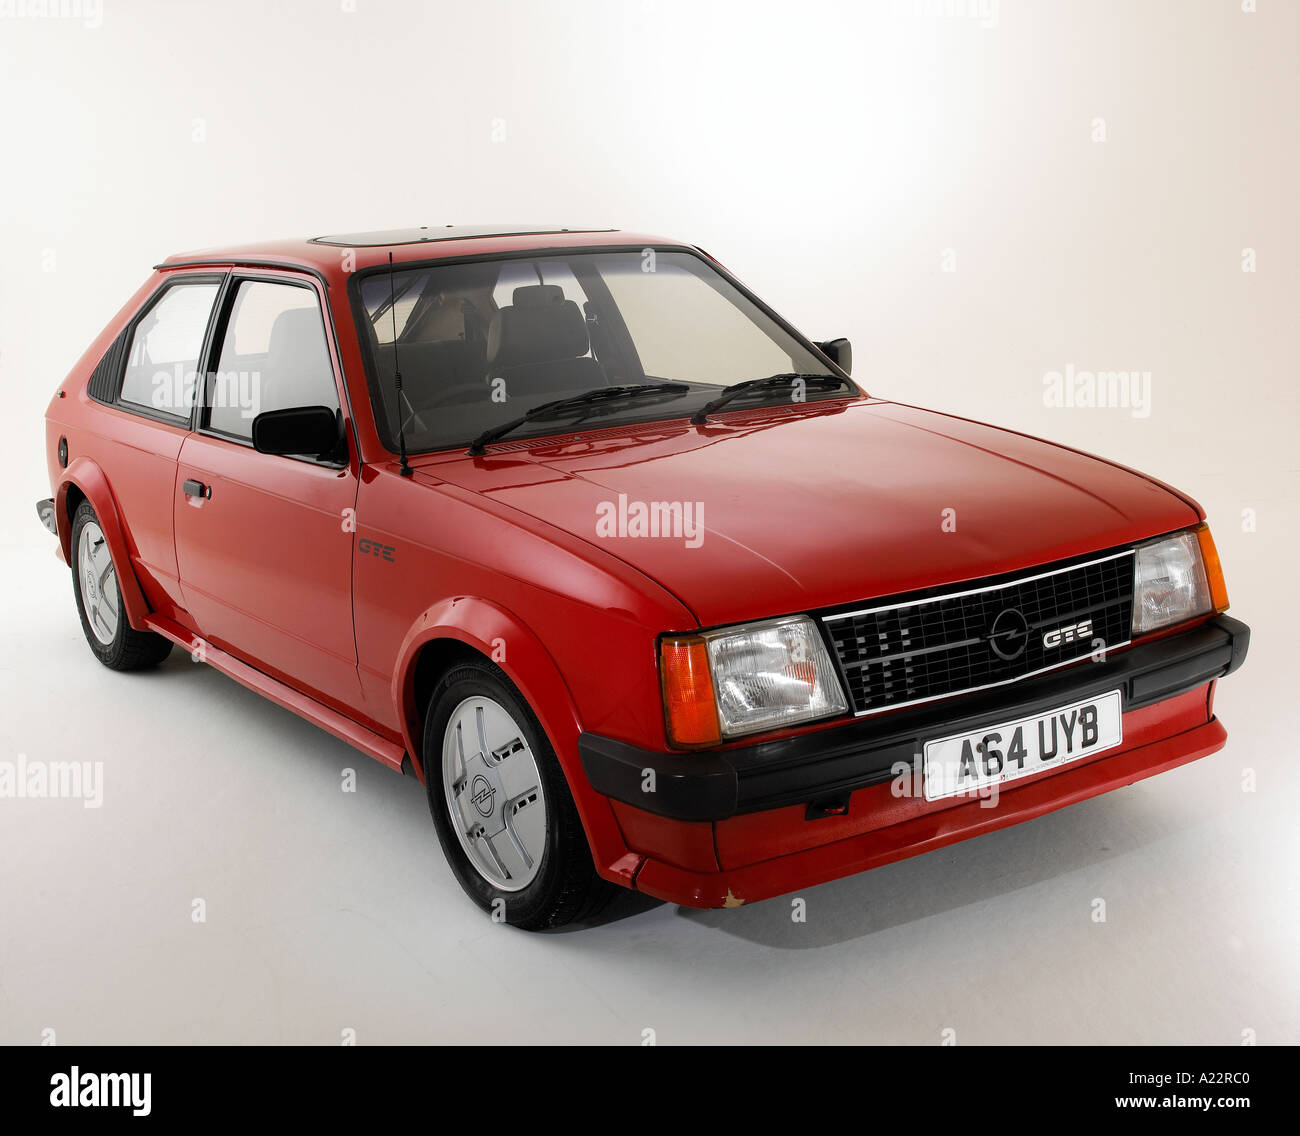 1983 opel kadett gte stock photo royalty free image 3391423 alamy. Black Bedroom Furniture Sets. Home Design Ideas